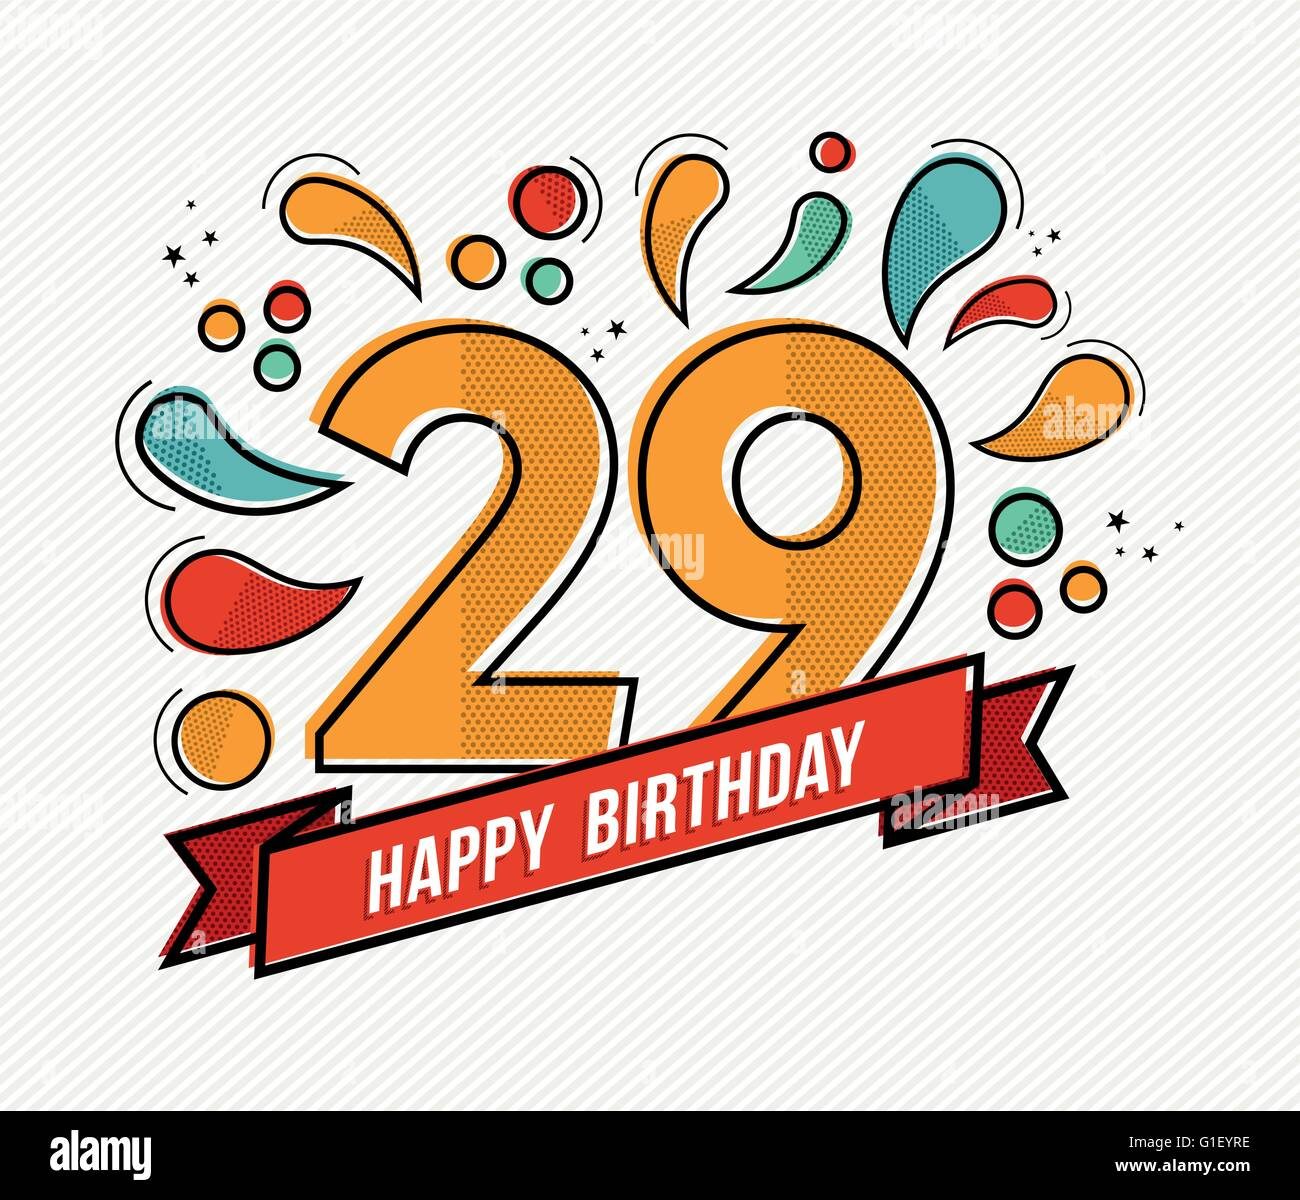 Happy birthday number 29 greeting card for twenty nine year in happy birthday number 29 greeting card for twenty nine year in modern flat line art with colorful geometric shapes bookmarktalkfo Images